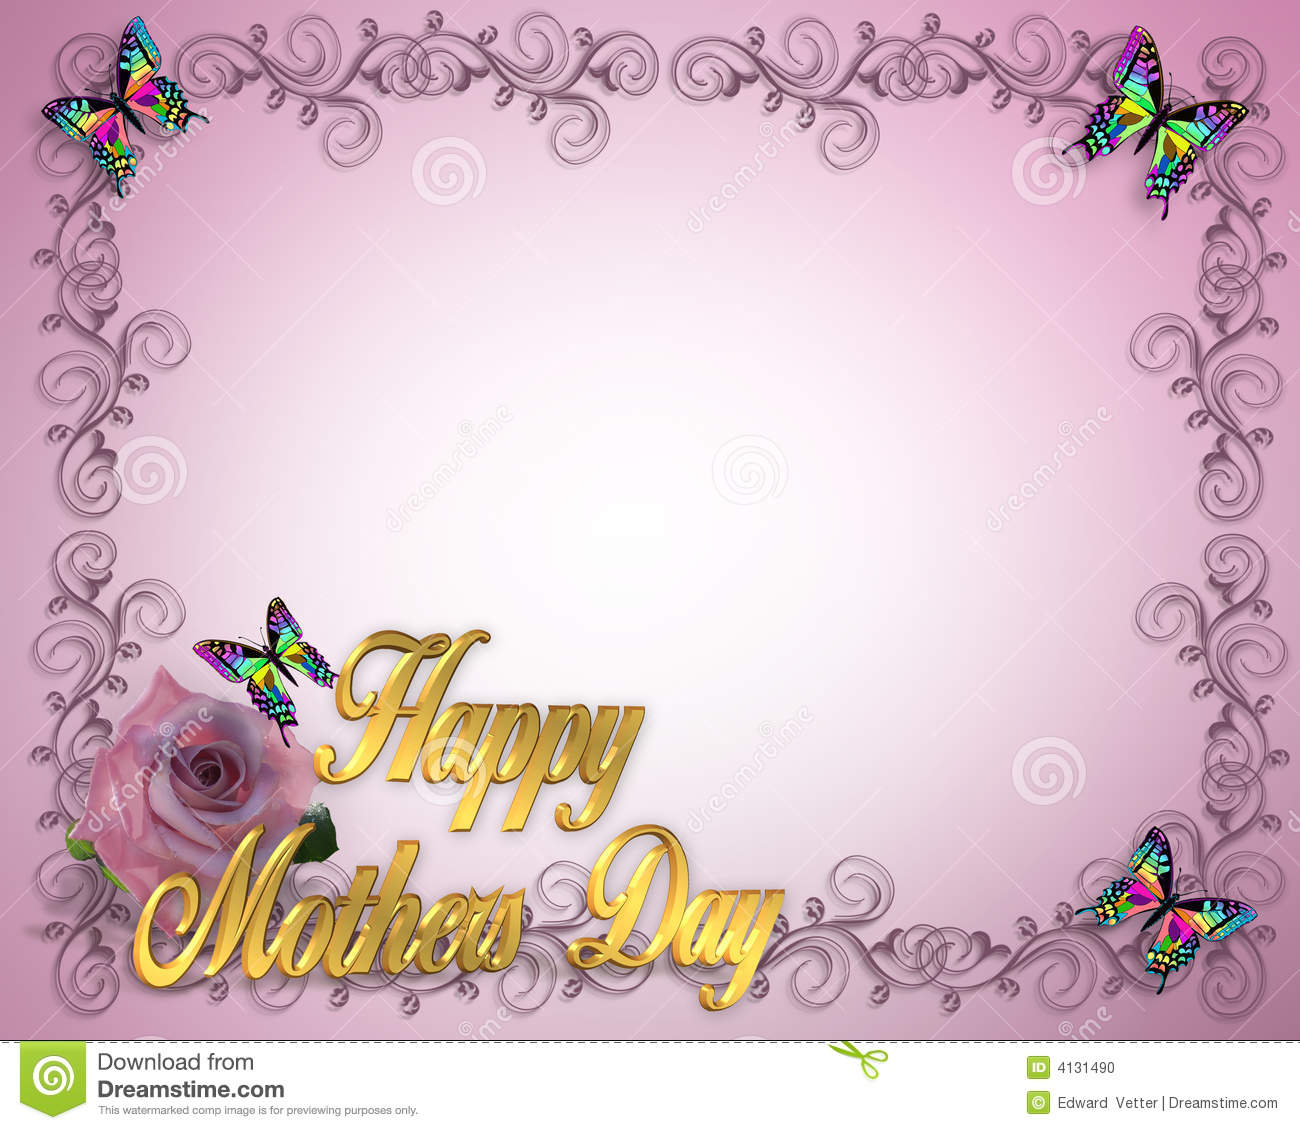 Mothers Day Border design stock illustration. Illustration of moms ...